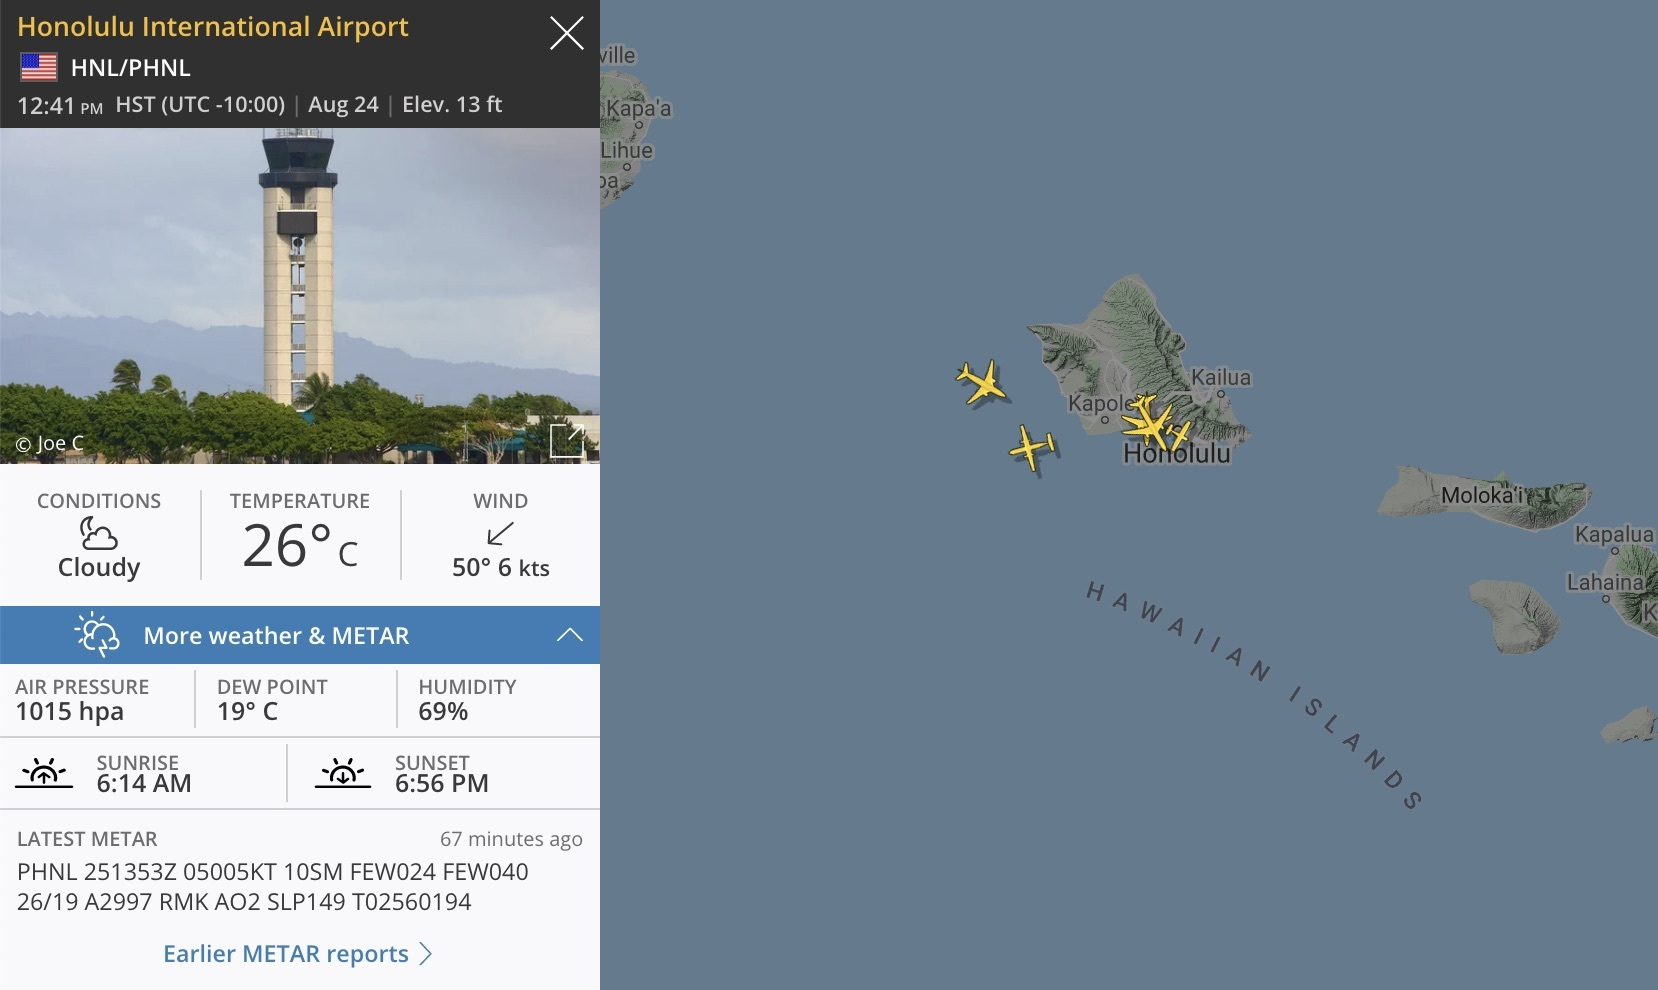 The METAR and Honolulu airport